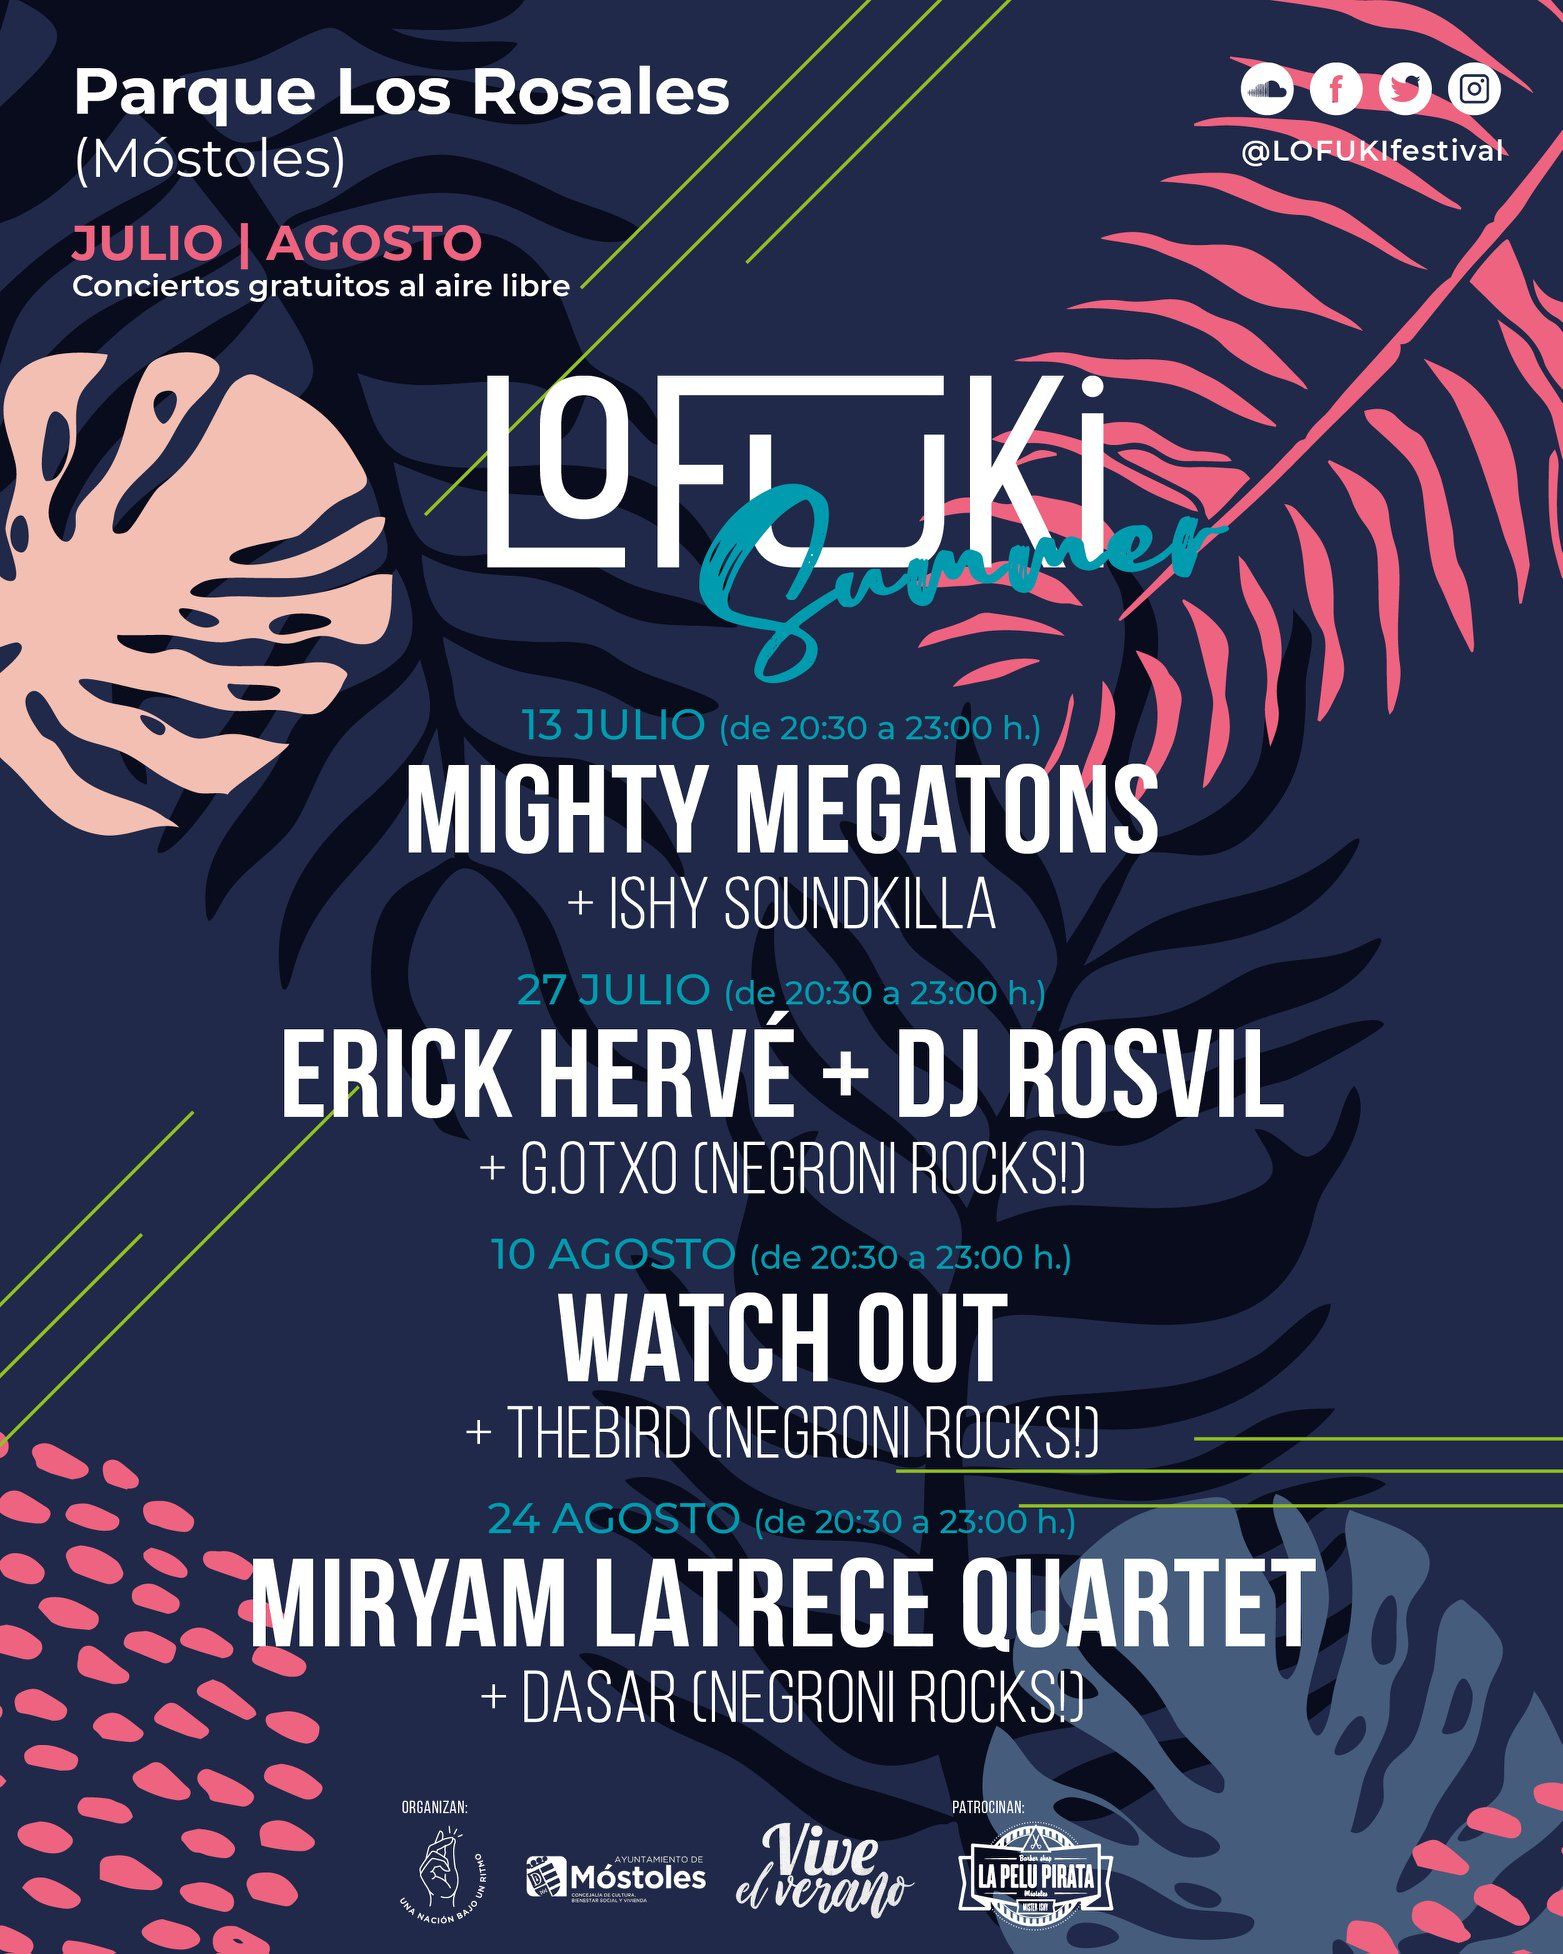 Lofuki Summer 2019: Watch Out + Thebird (Negroni Rocks!)